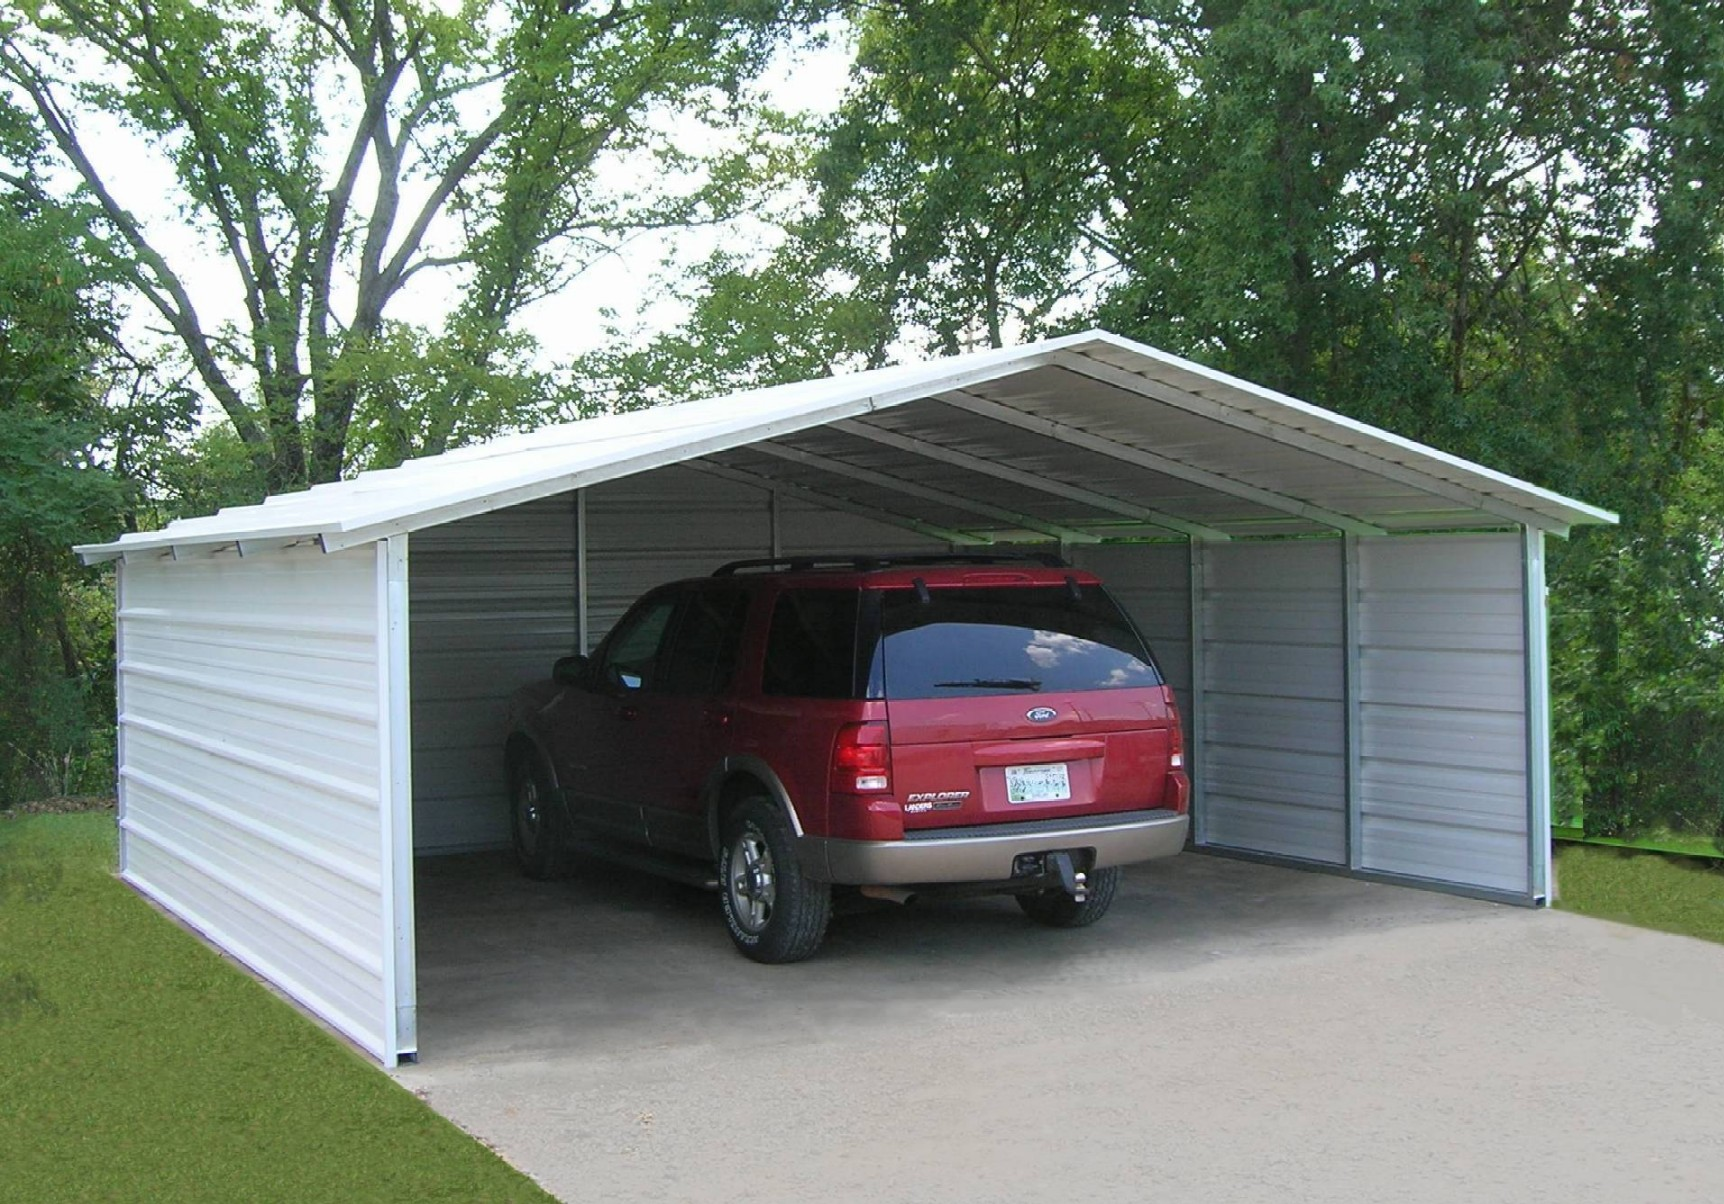 Carports Designed by VersaTube Offer Elegance and More ...